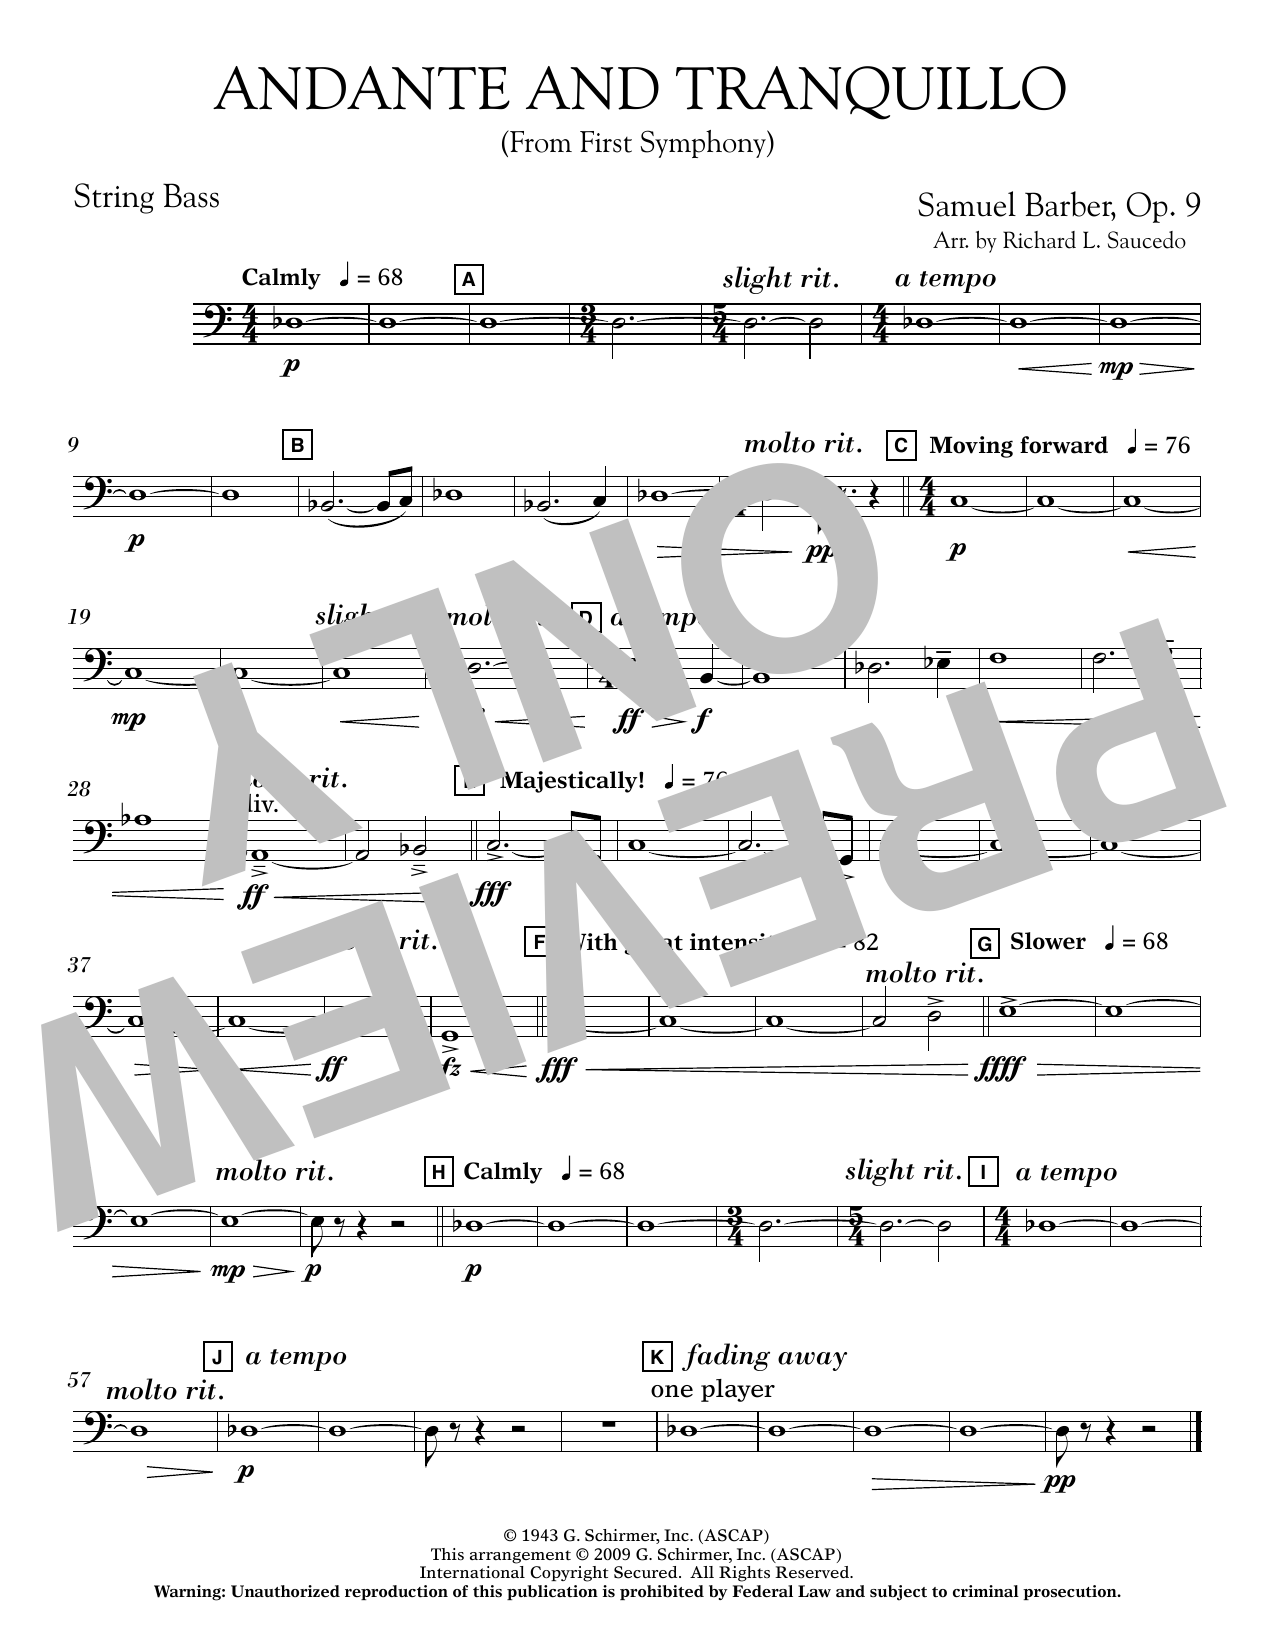 Andante and Tranquillo (from First Symphony) - String Bass